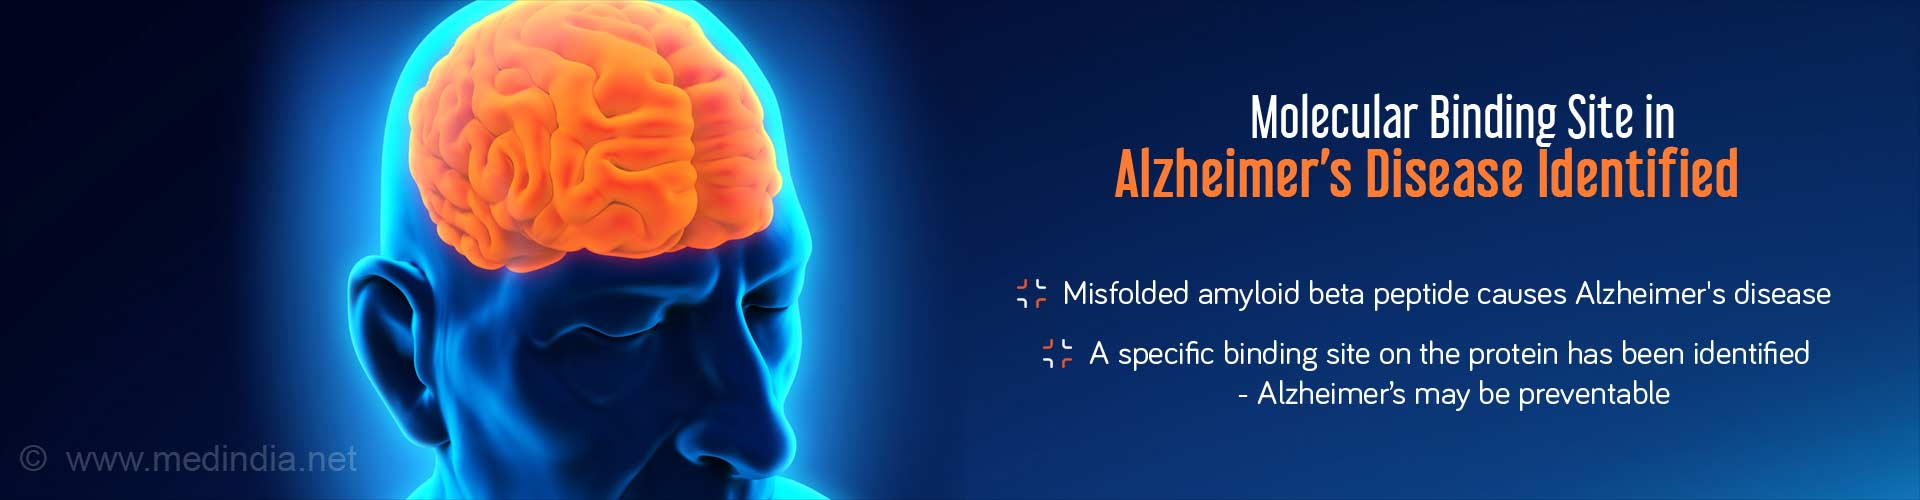 Molecular binding site in Alzheimer's disease identified - Misfolded amyloid beta peptide causes Alzheimer's disease - A specific binding site on the protein has been identified - Alzheimer's may be prevented